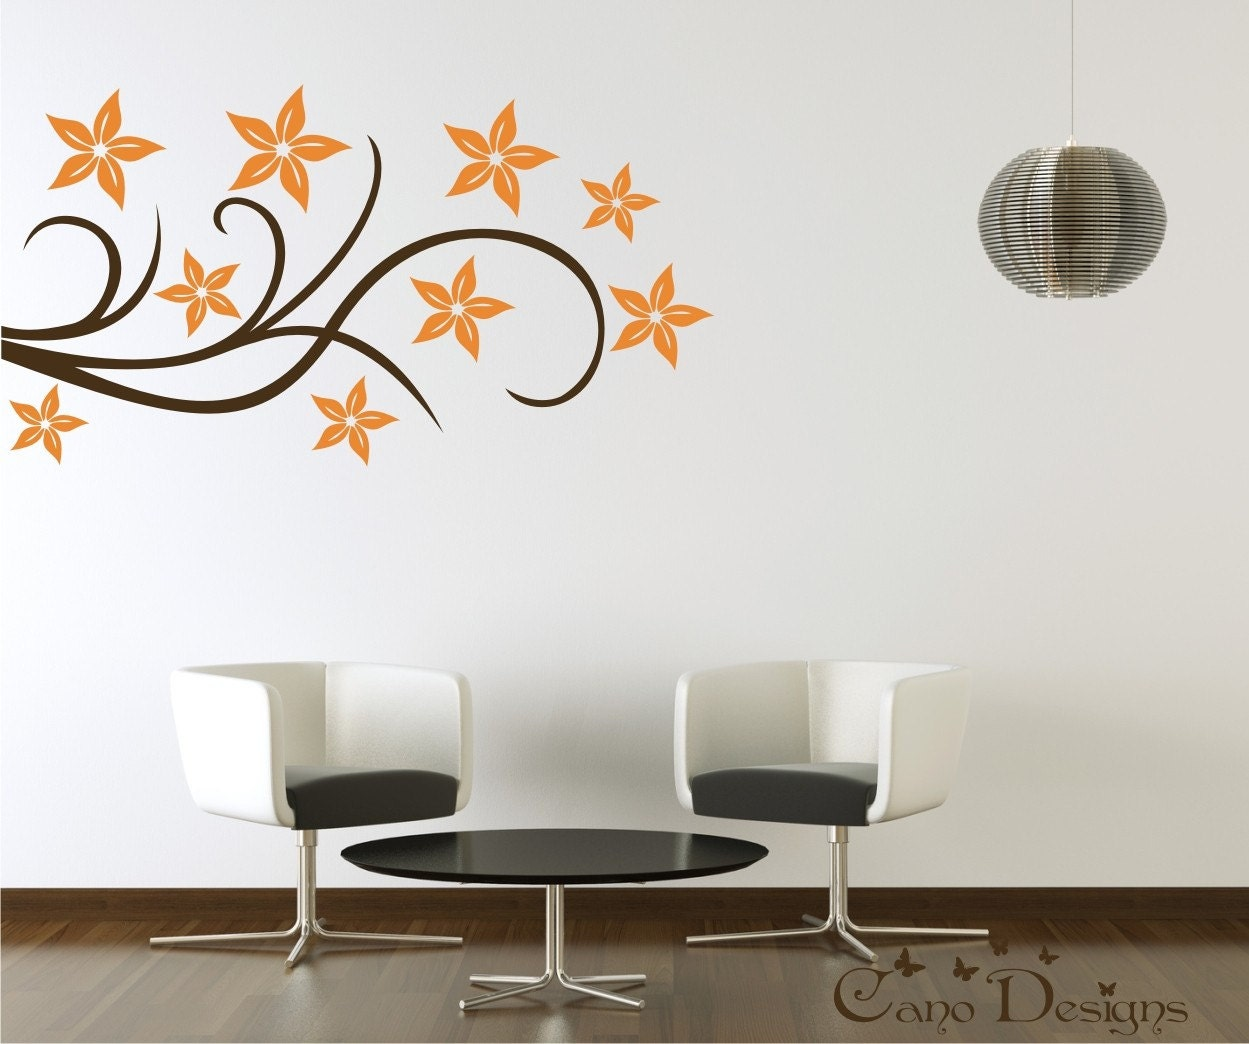 Floral design vinyl decal wall decals stickers removable for Create wall mural